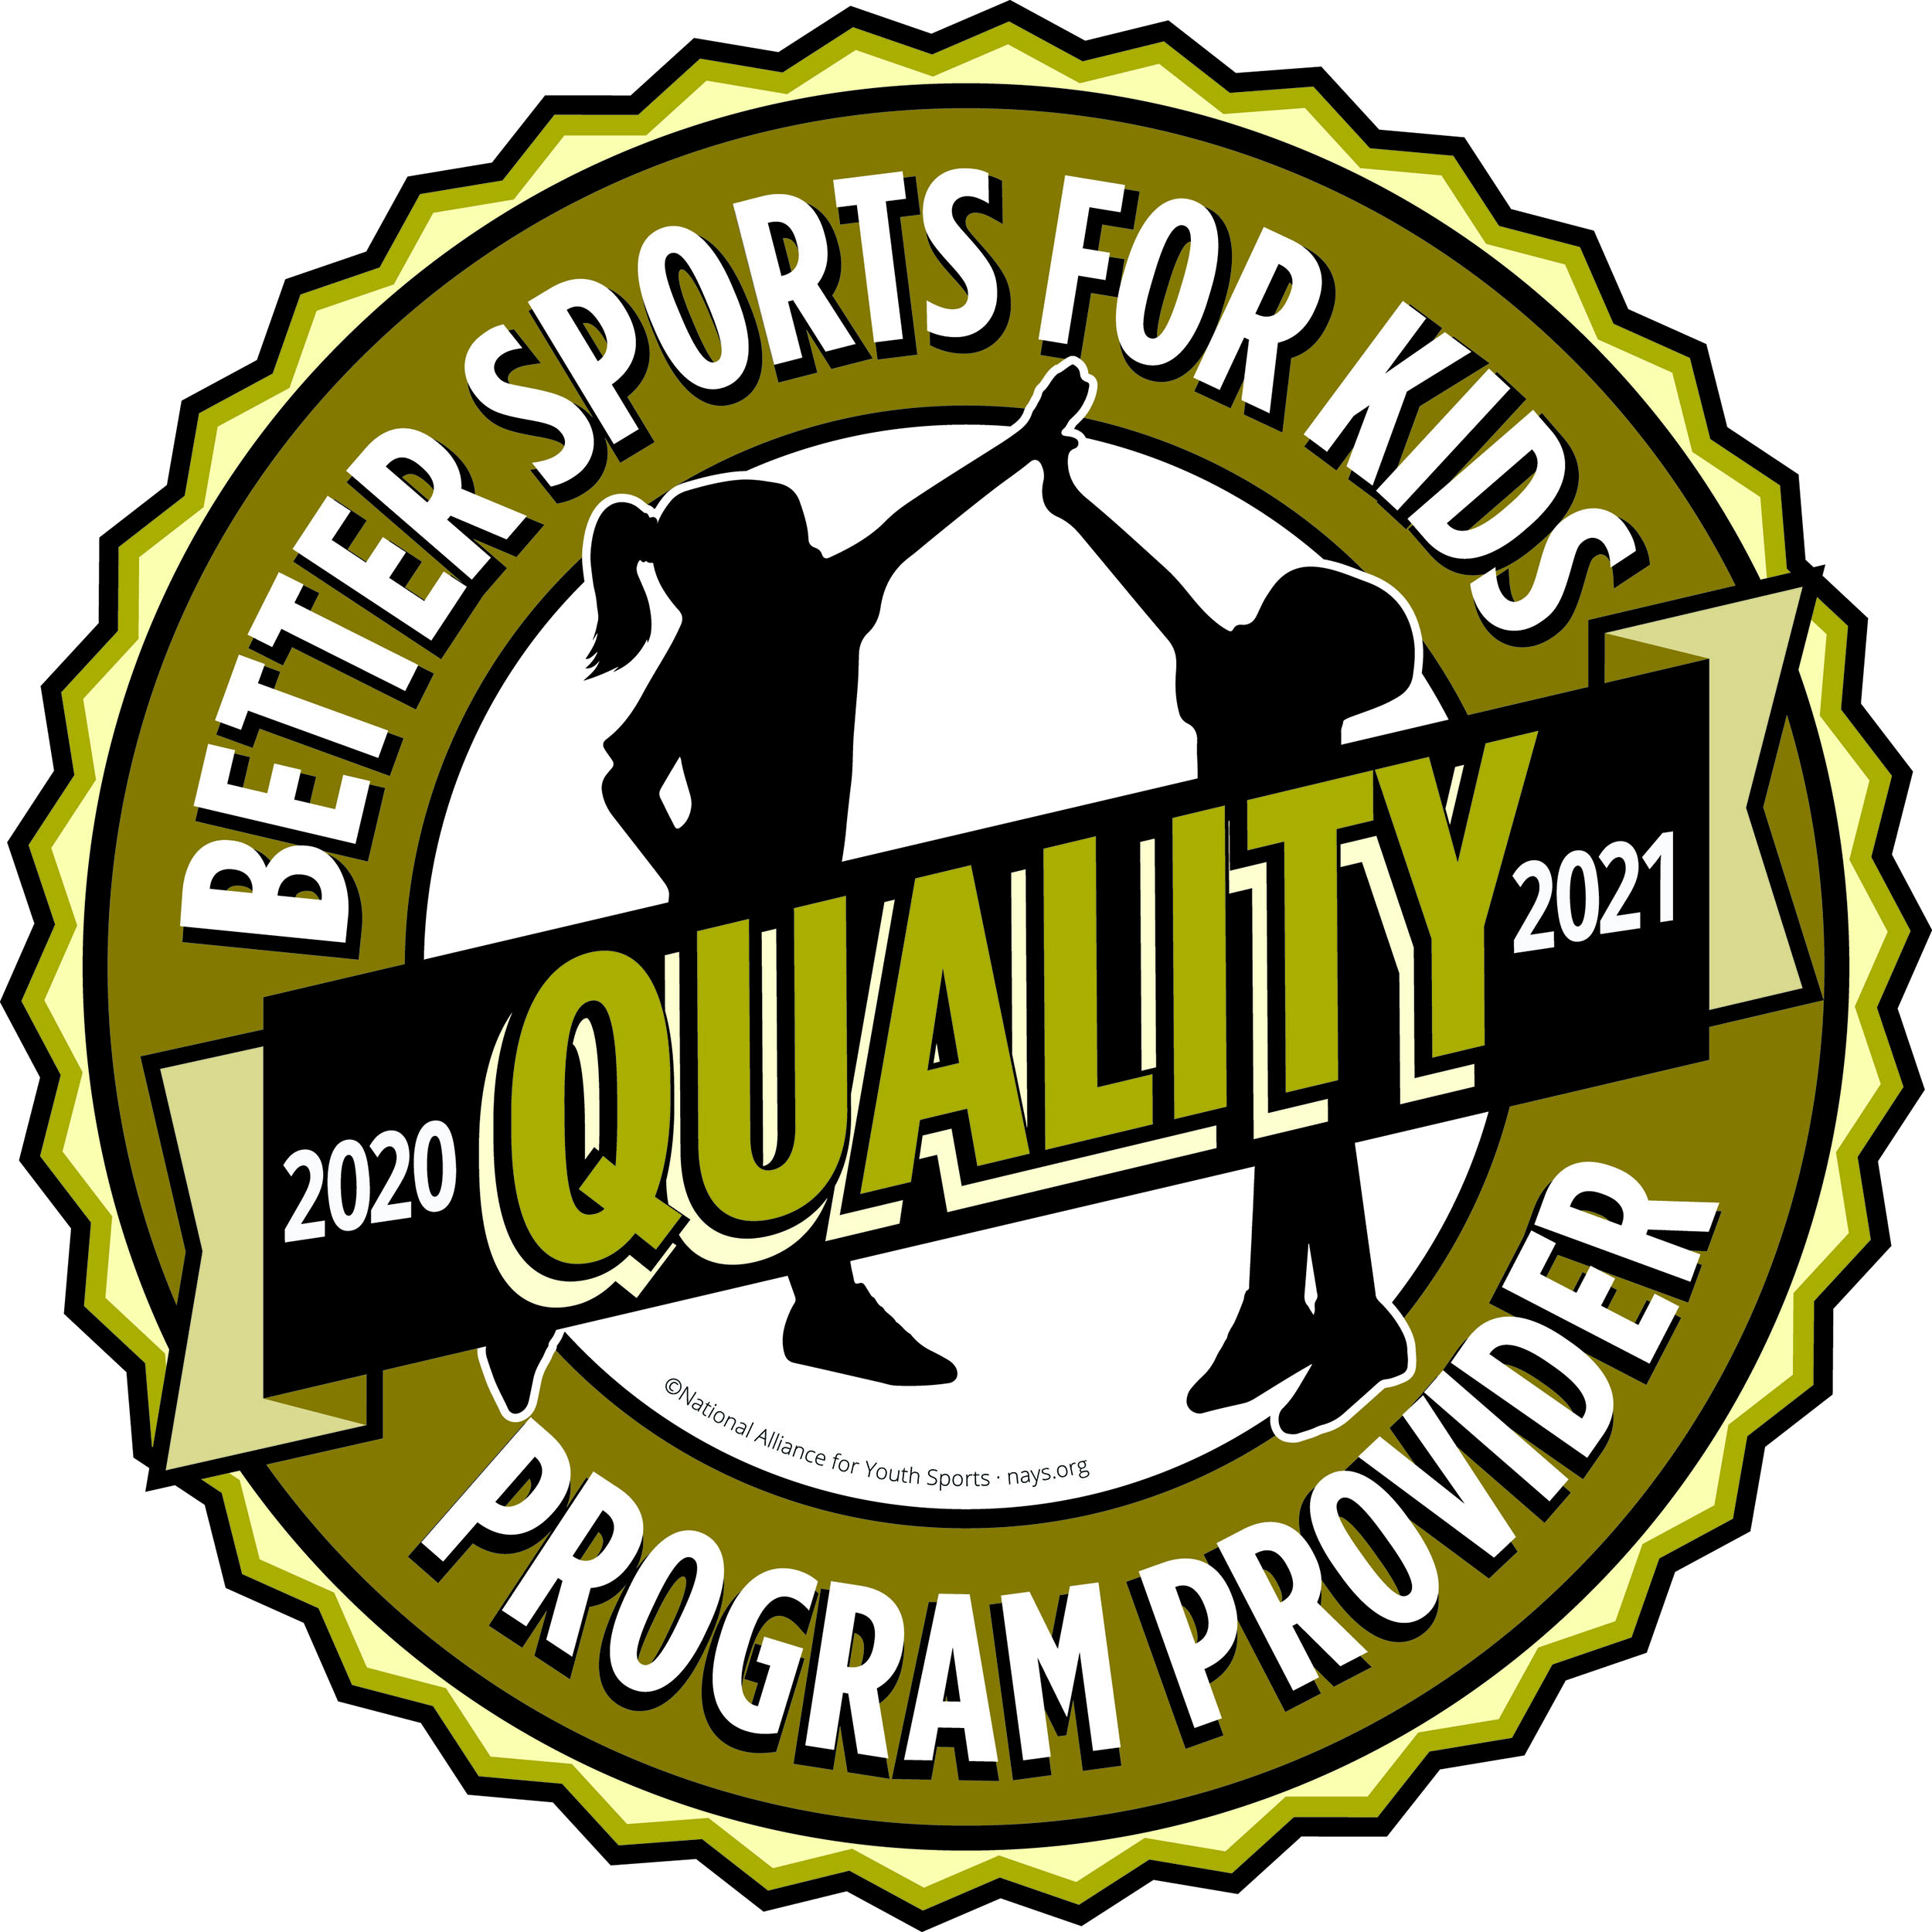 Better Sports for Kids Quality Program Provider